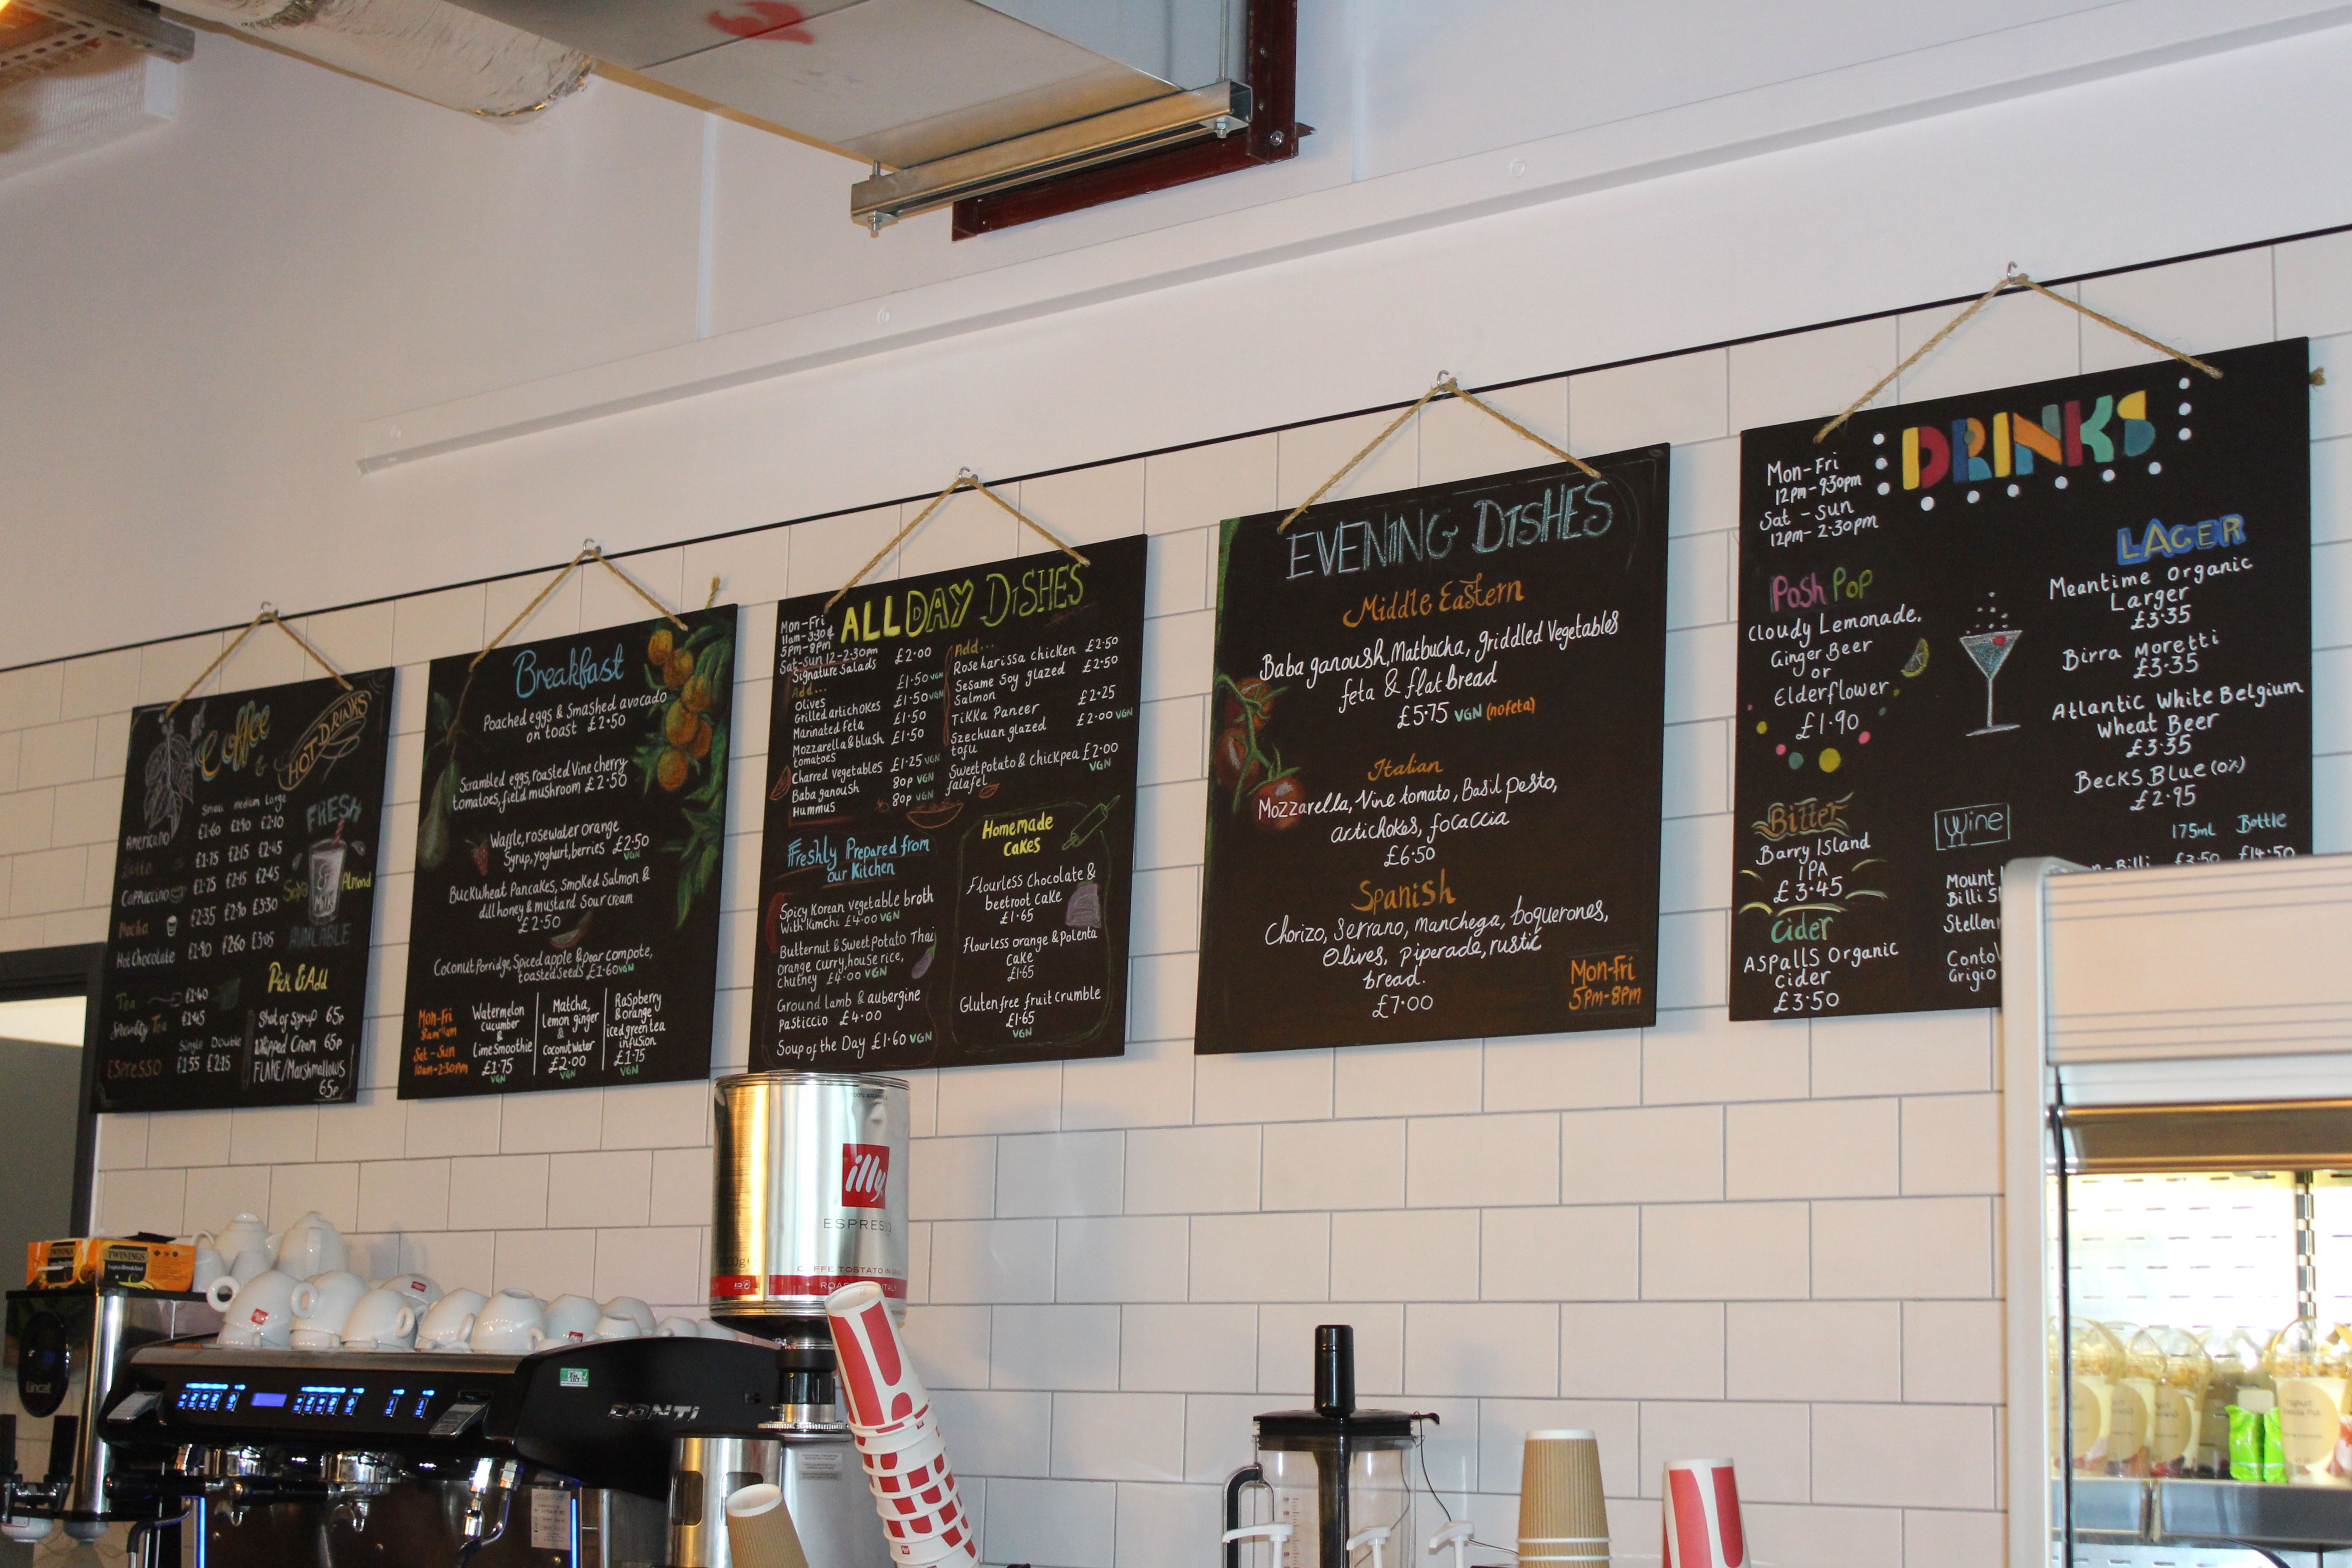 Chalkboard Menu For River Side Cafe By Jemisha Maadhavji Chalkboard Menu Scandinavian Art Cafe